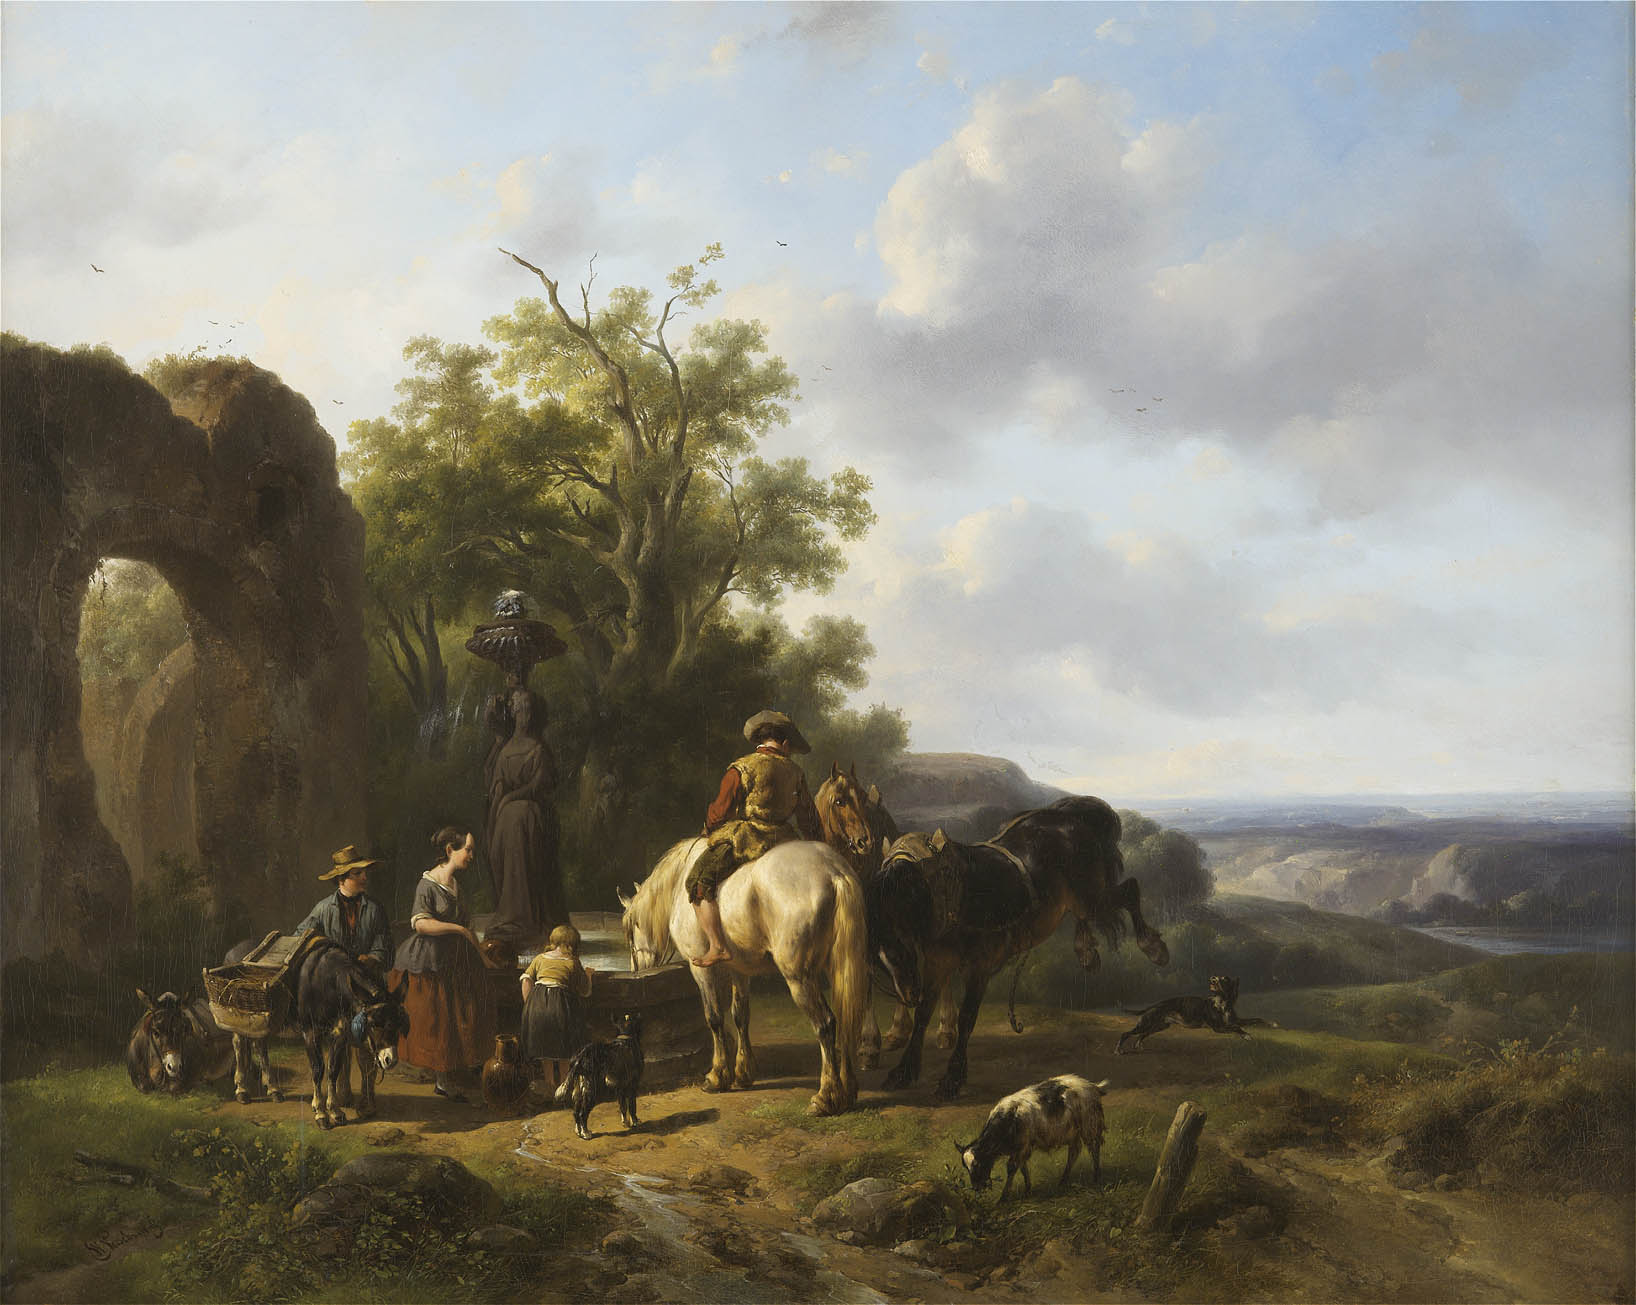 Wouterus Verschuur | Horses and figures near a well | Kunsthandel Bies | Bies Gallery